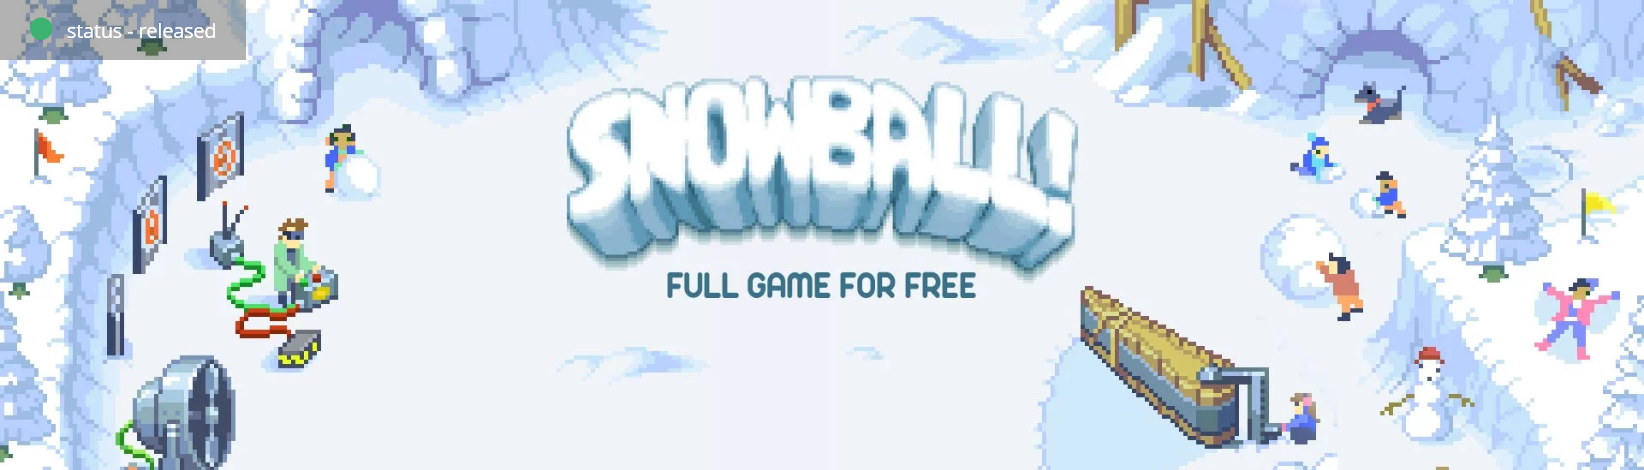 Screenshot_2019-06-12 Snowball Indiegala Developers.png